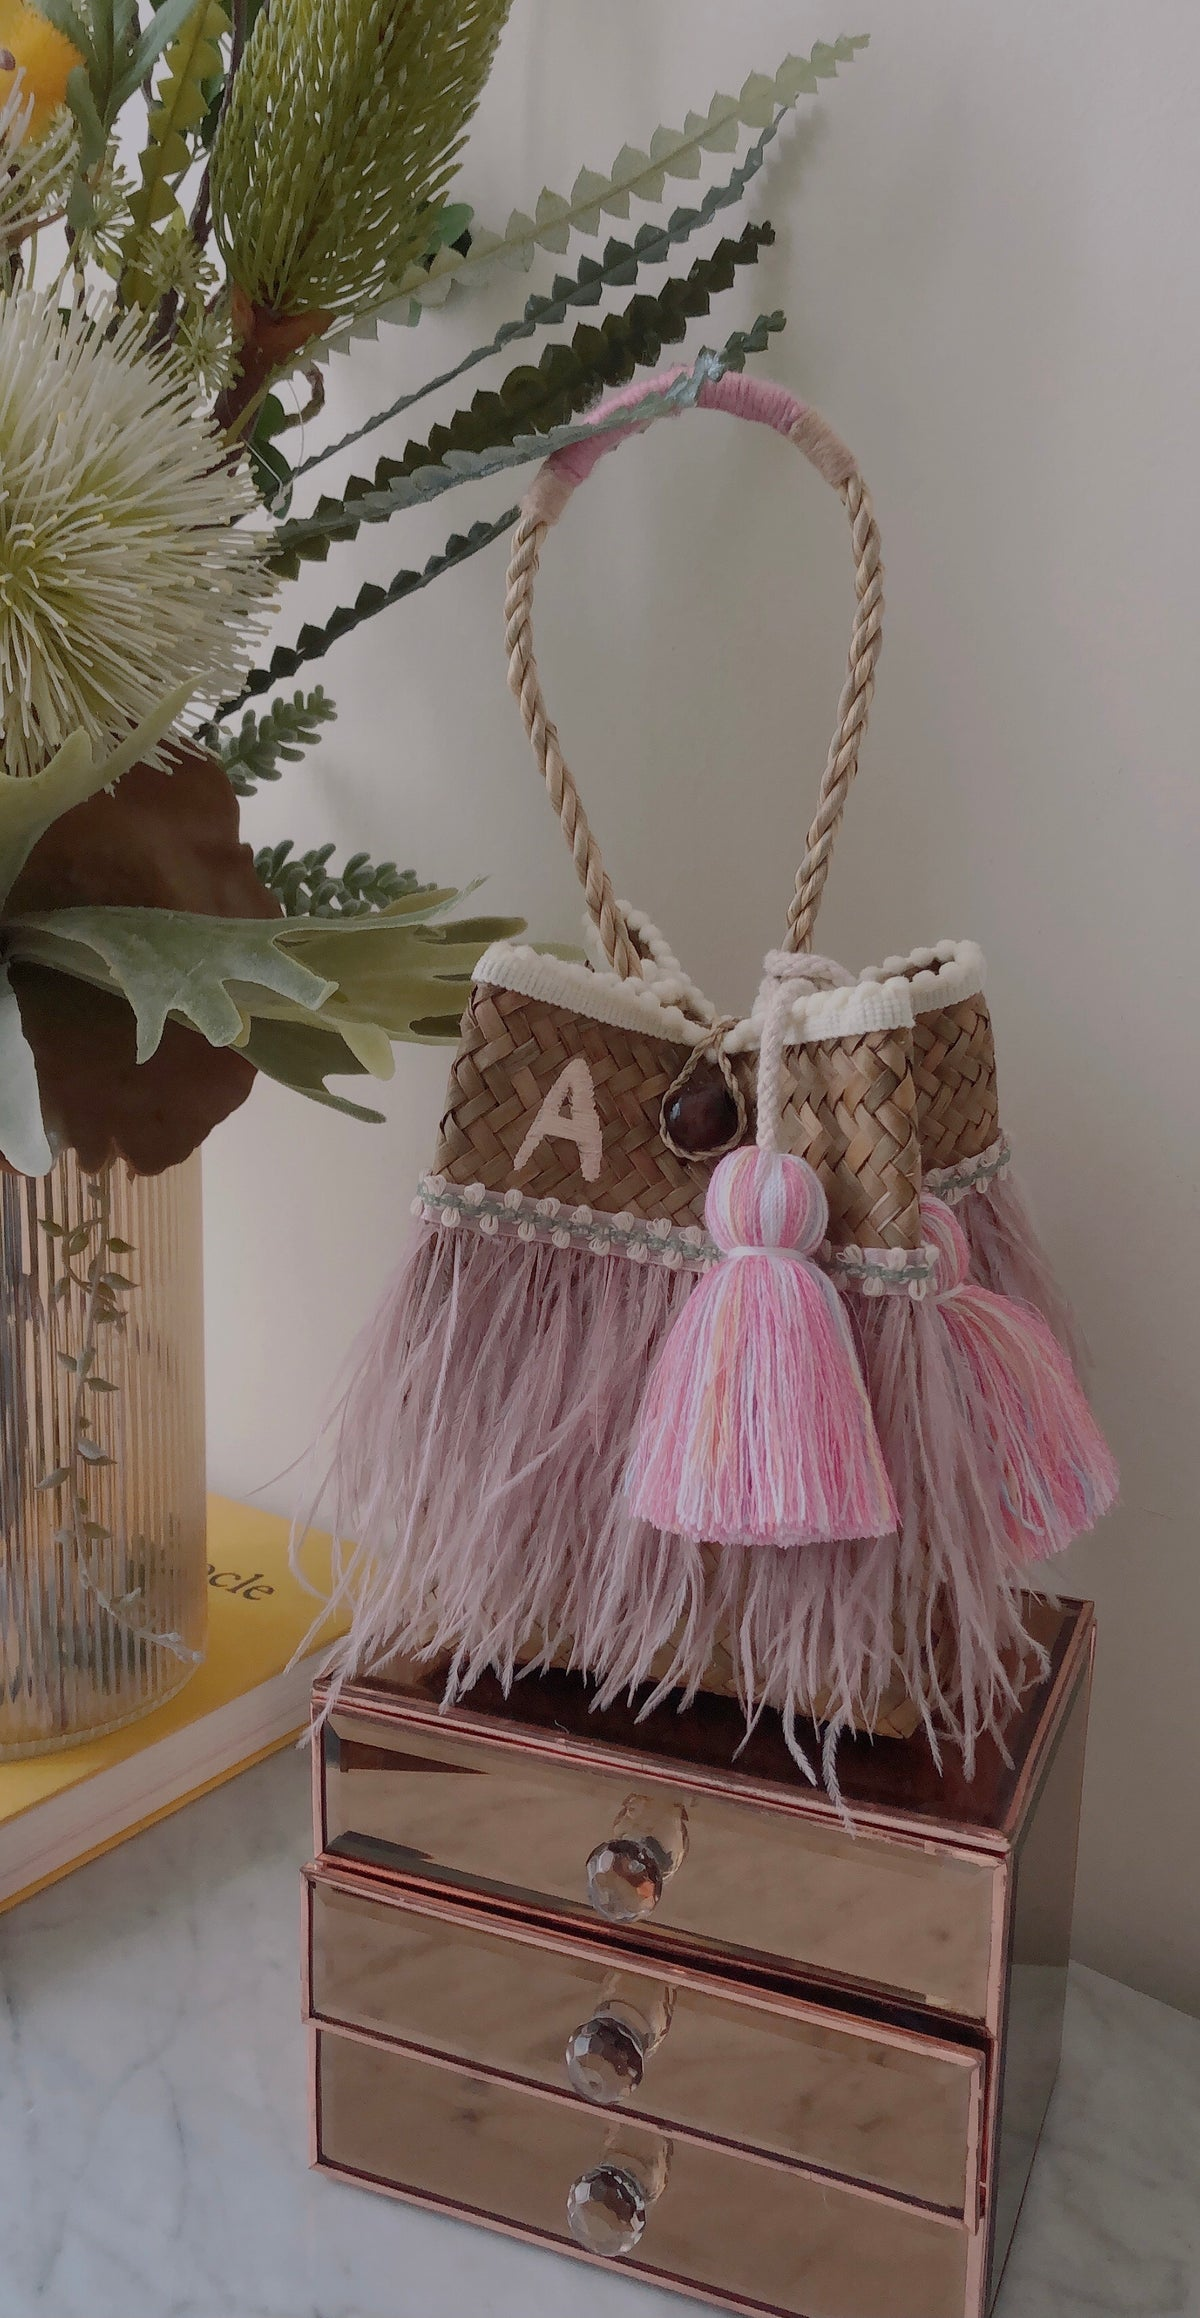 "PRE-ORDERS (We help you design) Fiji Pink Feathers Bag - Enter code ""happybag"" to get 10% off"